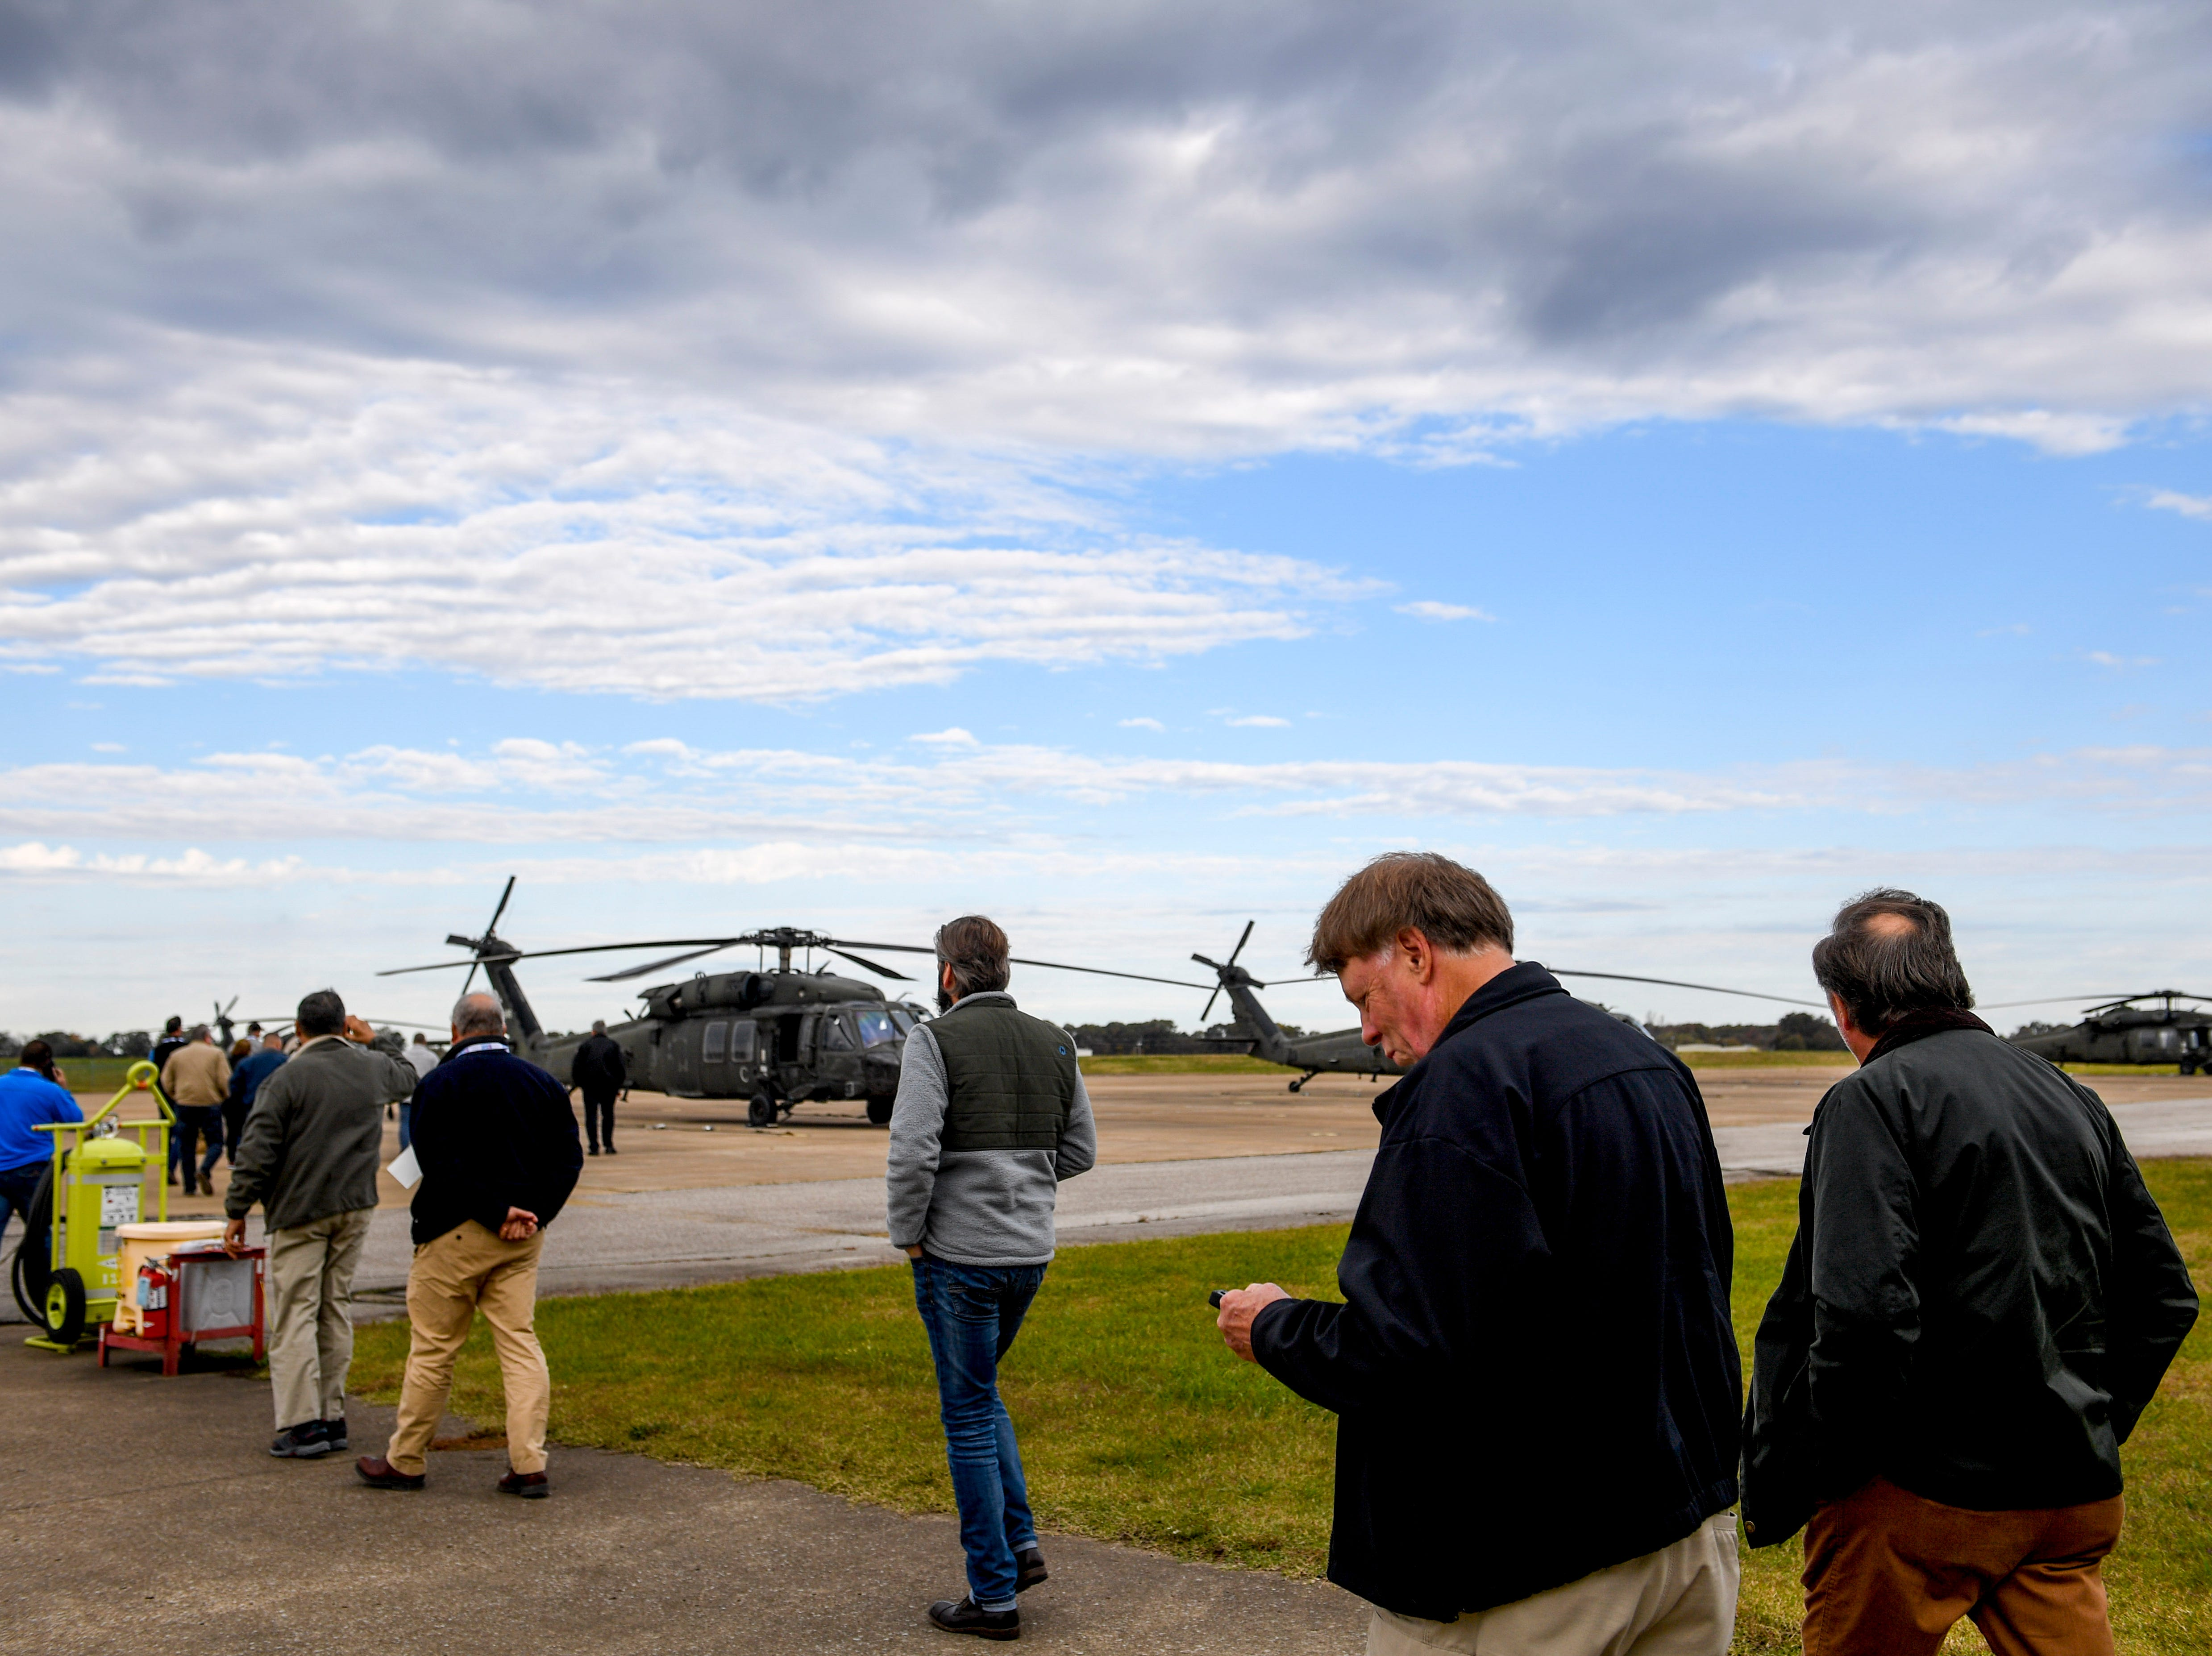 Attendees including Madison County Sheriff John Mehr approach helicopters during the annual Bosslift event put on by Employer Support of the Guard and Reserve (ESGR) and the Tennessee National Guard at Army Aviation Facility in Jackson, Tenn., on Thursday, Nov. 8, 2018.